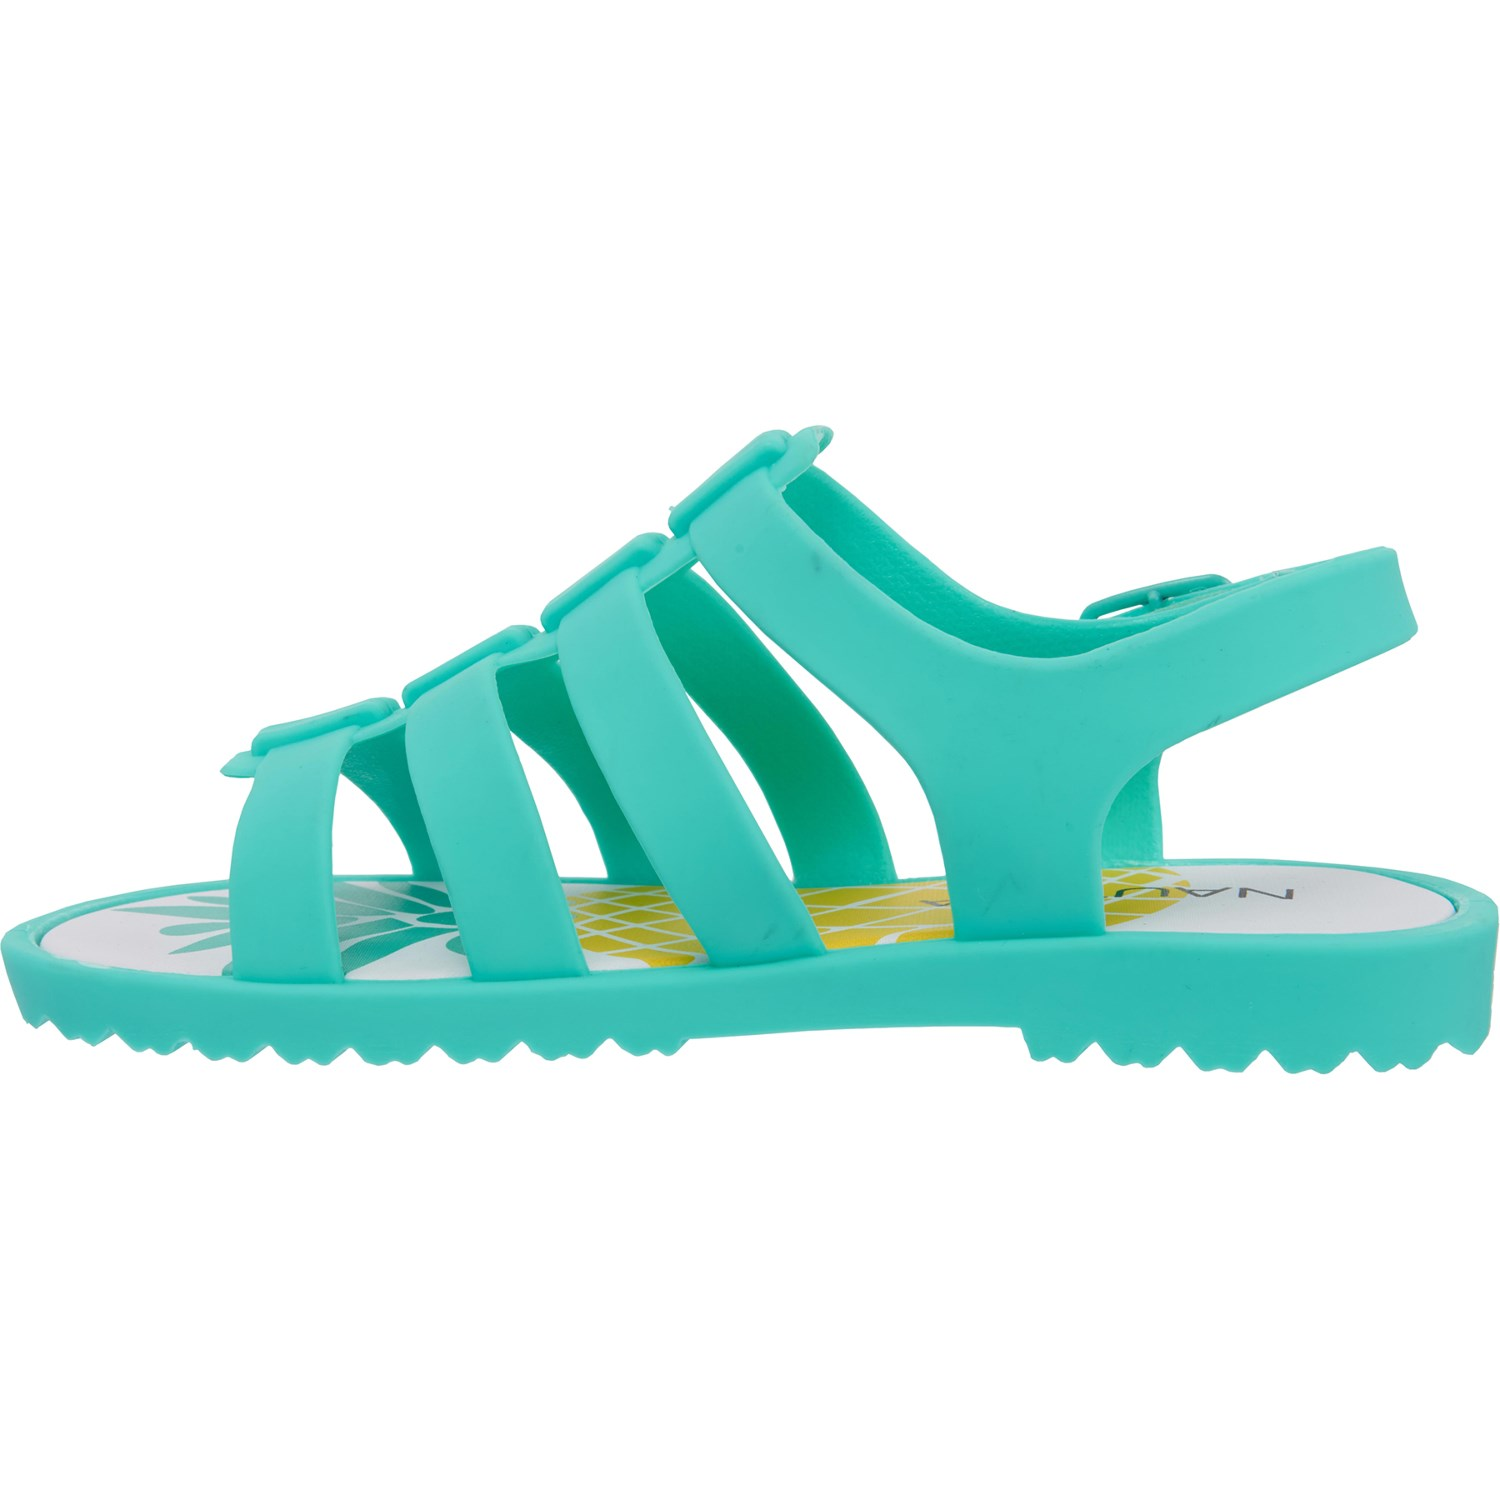 Nautica Sandalsfor Abeam Capri Girls Pineapple Blue 4A53RjL